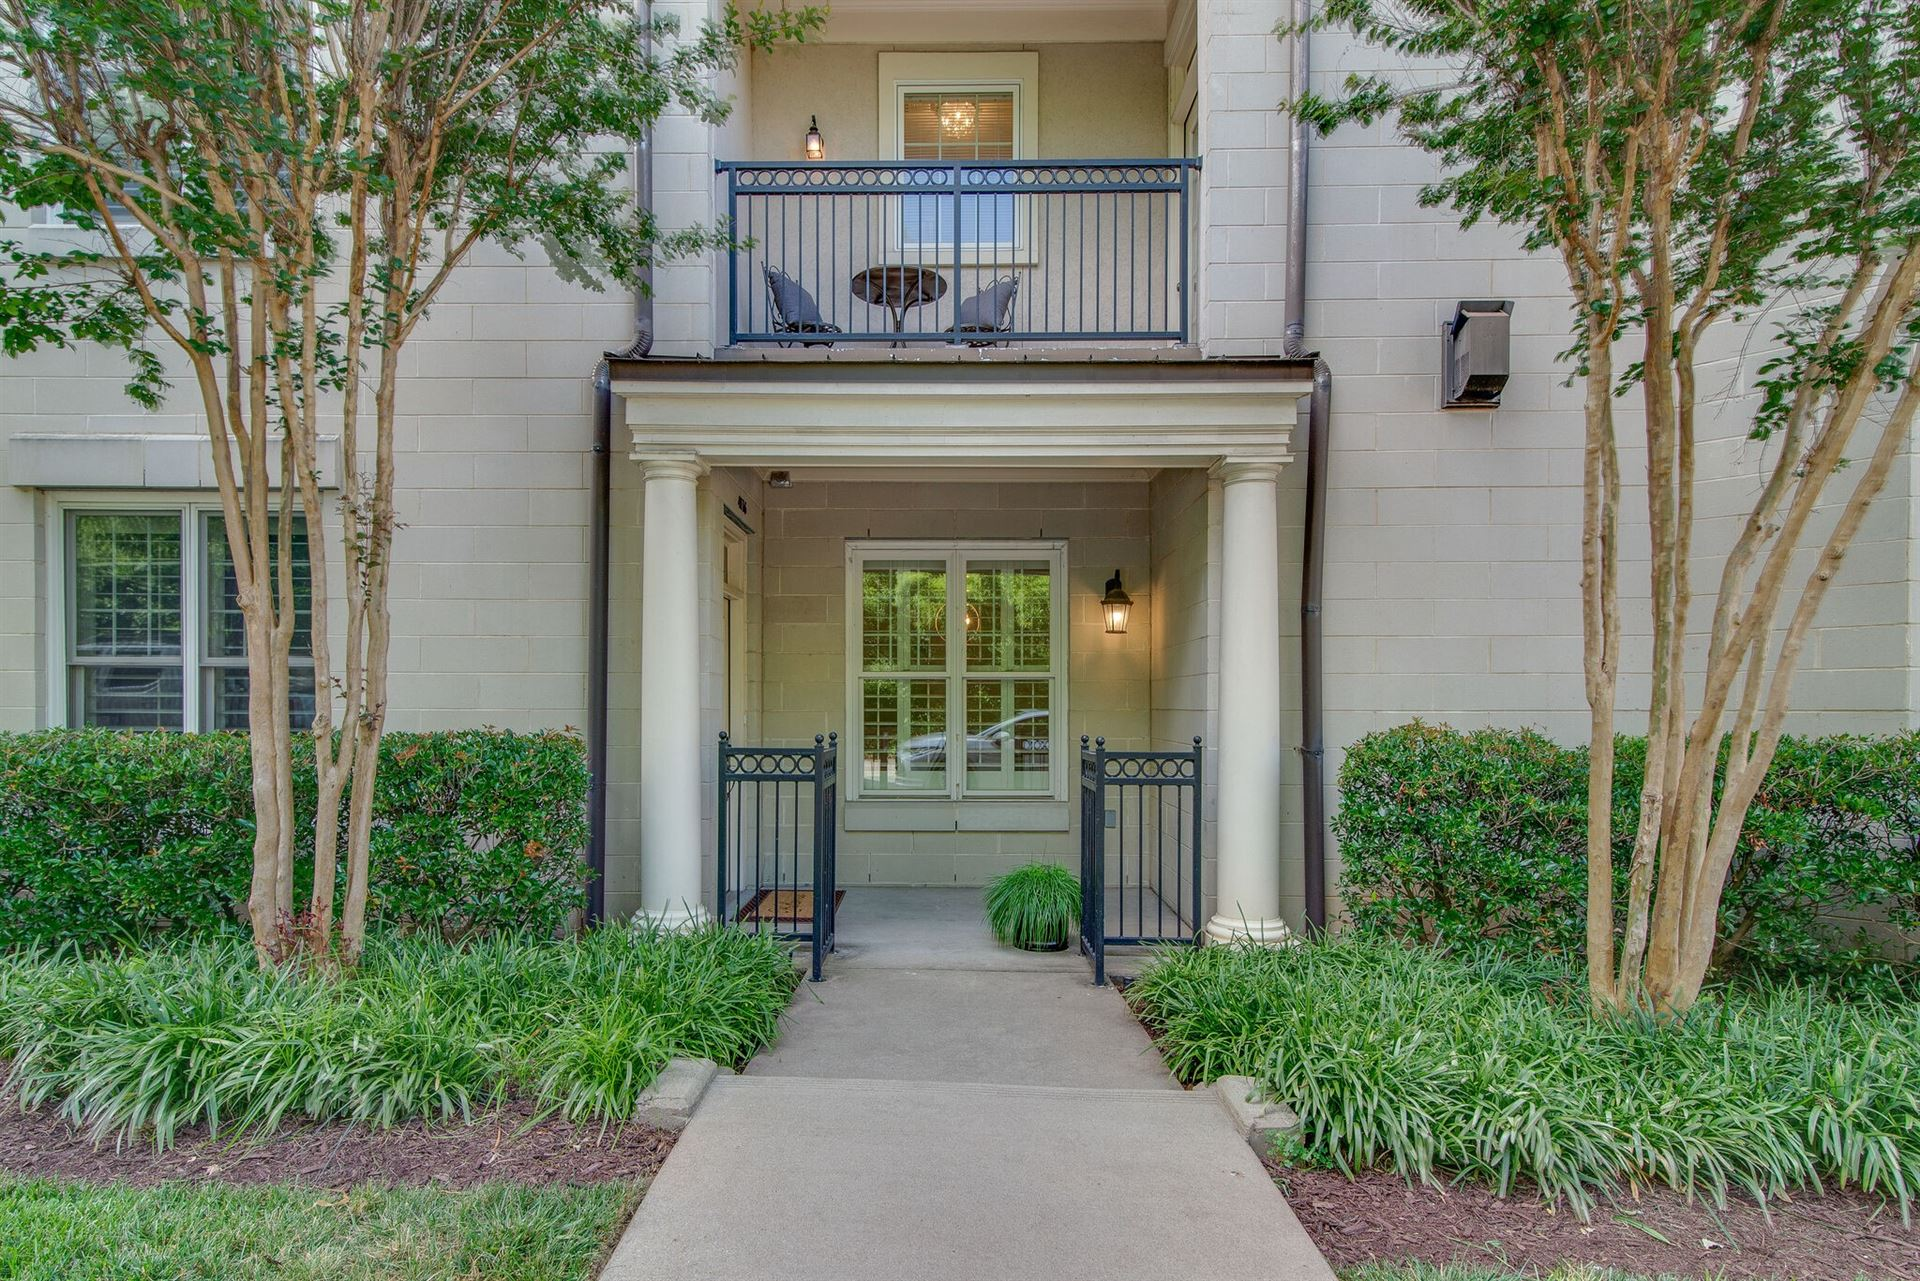 Photo of 4116 Ridgefield Dr, Nashville, TN 37205 (MLS # 2167340)